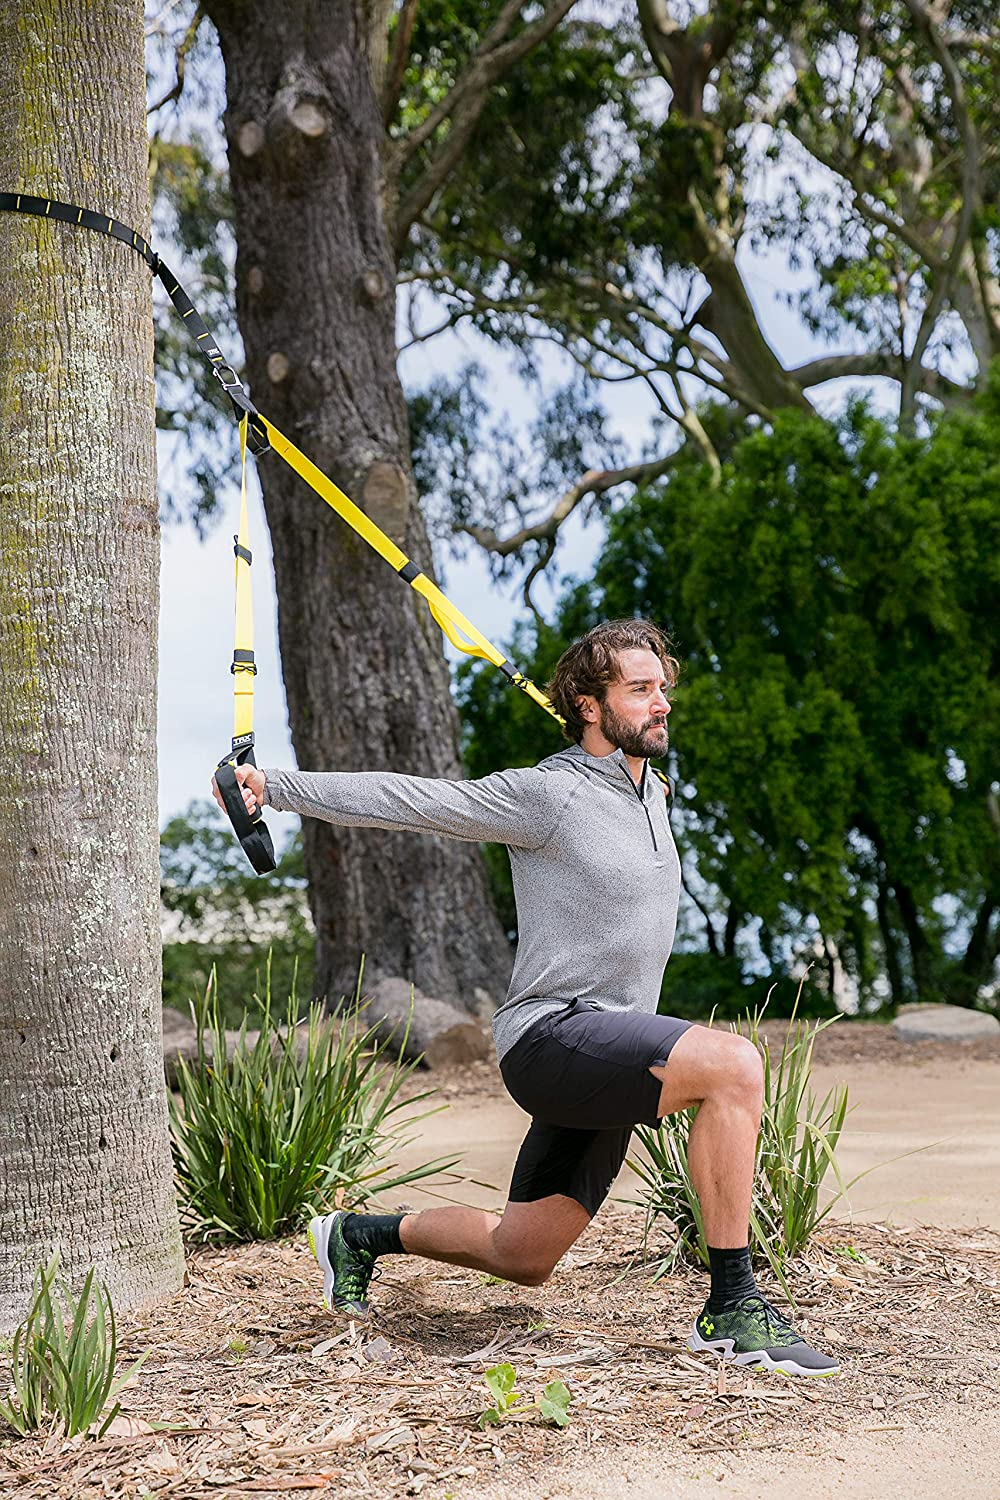 TRX Suspension Training: Home Gym in a Box Burn Fat Build Muscle Free Workouts Included Full Body Workout Solution for Any Level Improve Cardio